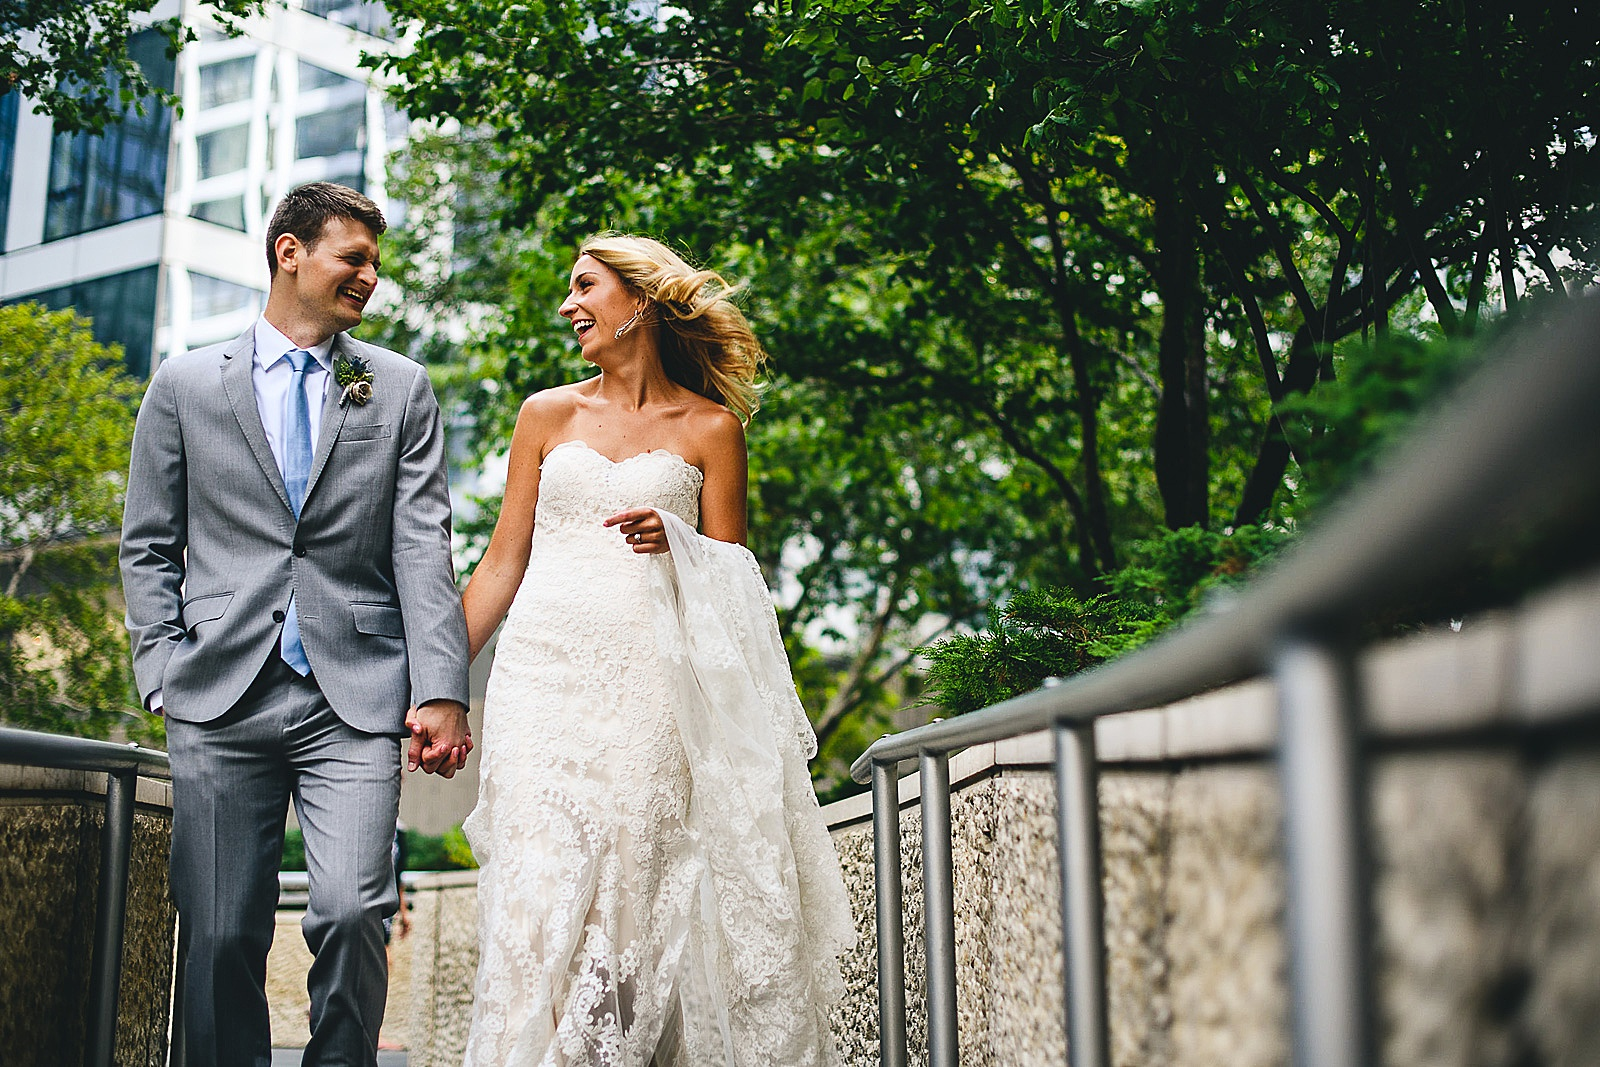 30 best chicago wedding photographers - Audrey + Jake's Beautiful Chicago Wedding at Chez